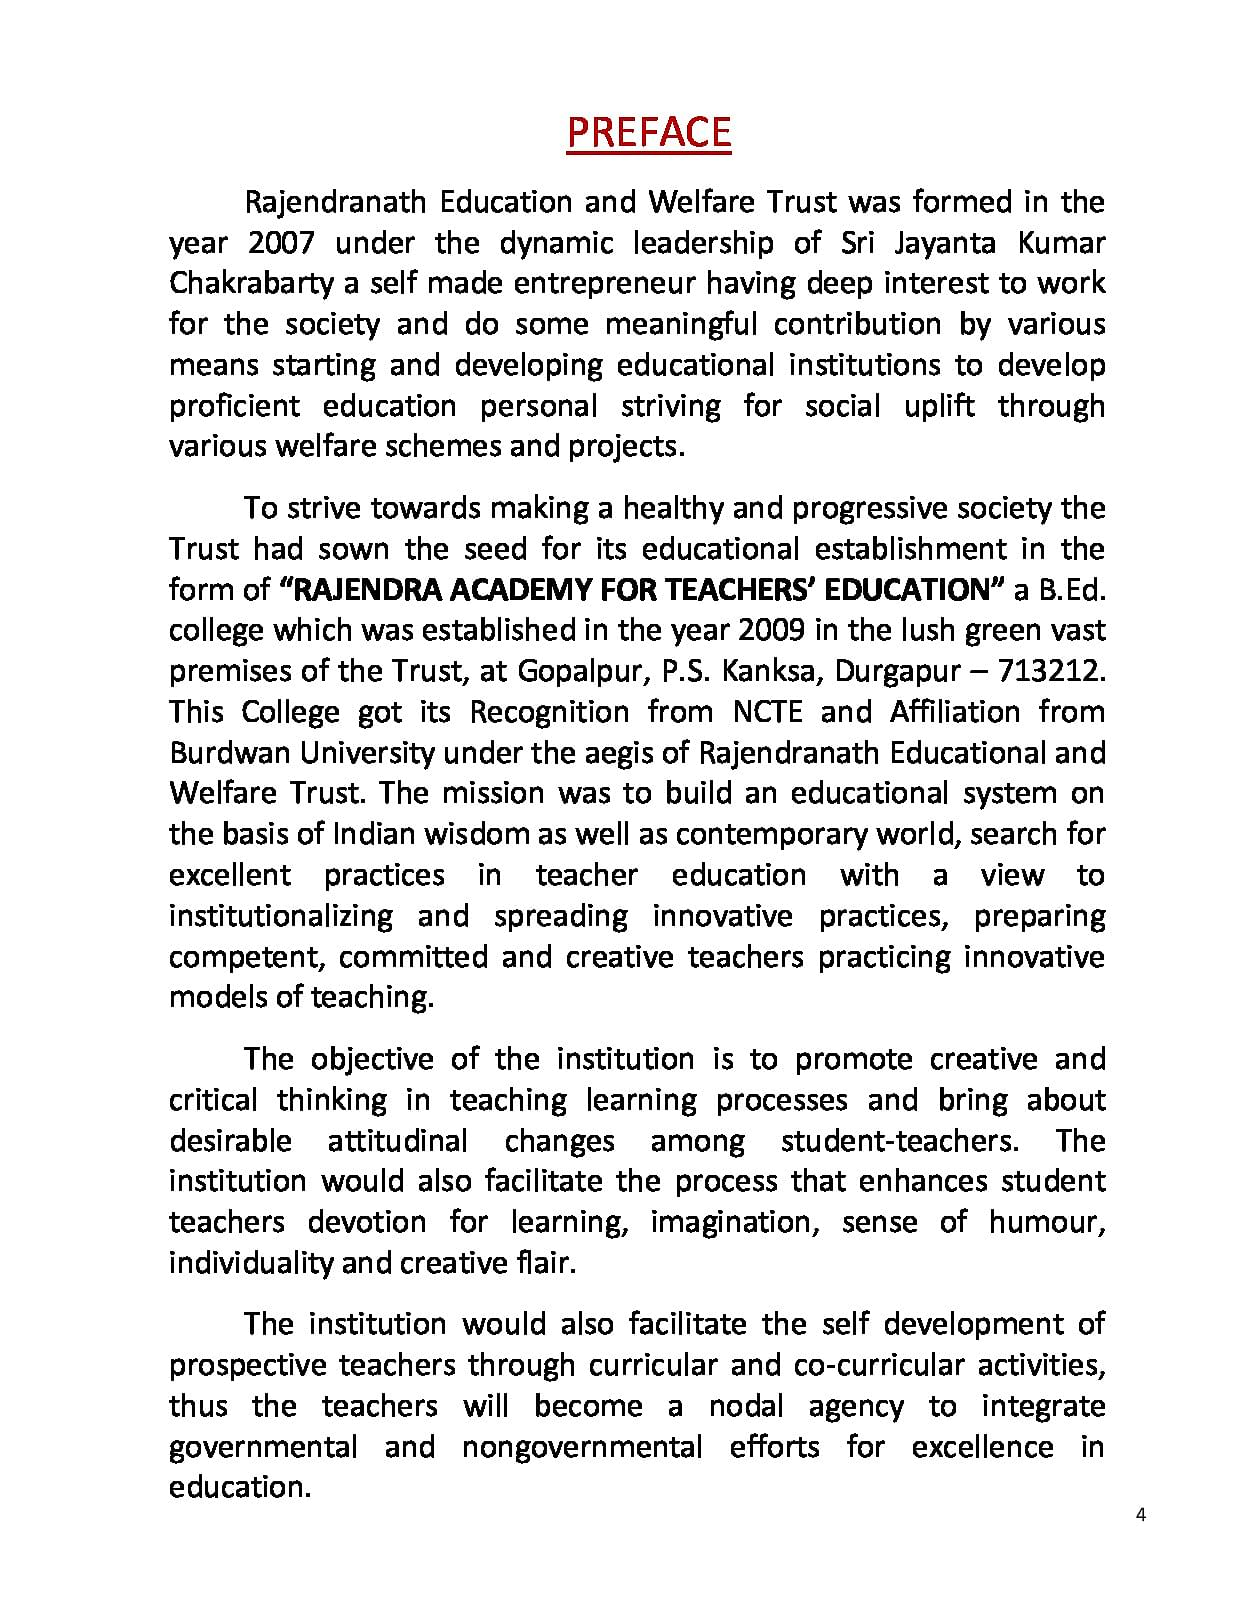 Rajendra Academy for Teacher's Education, Durgapur - Admissions